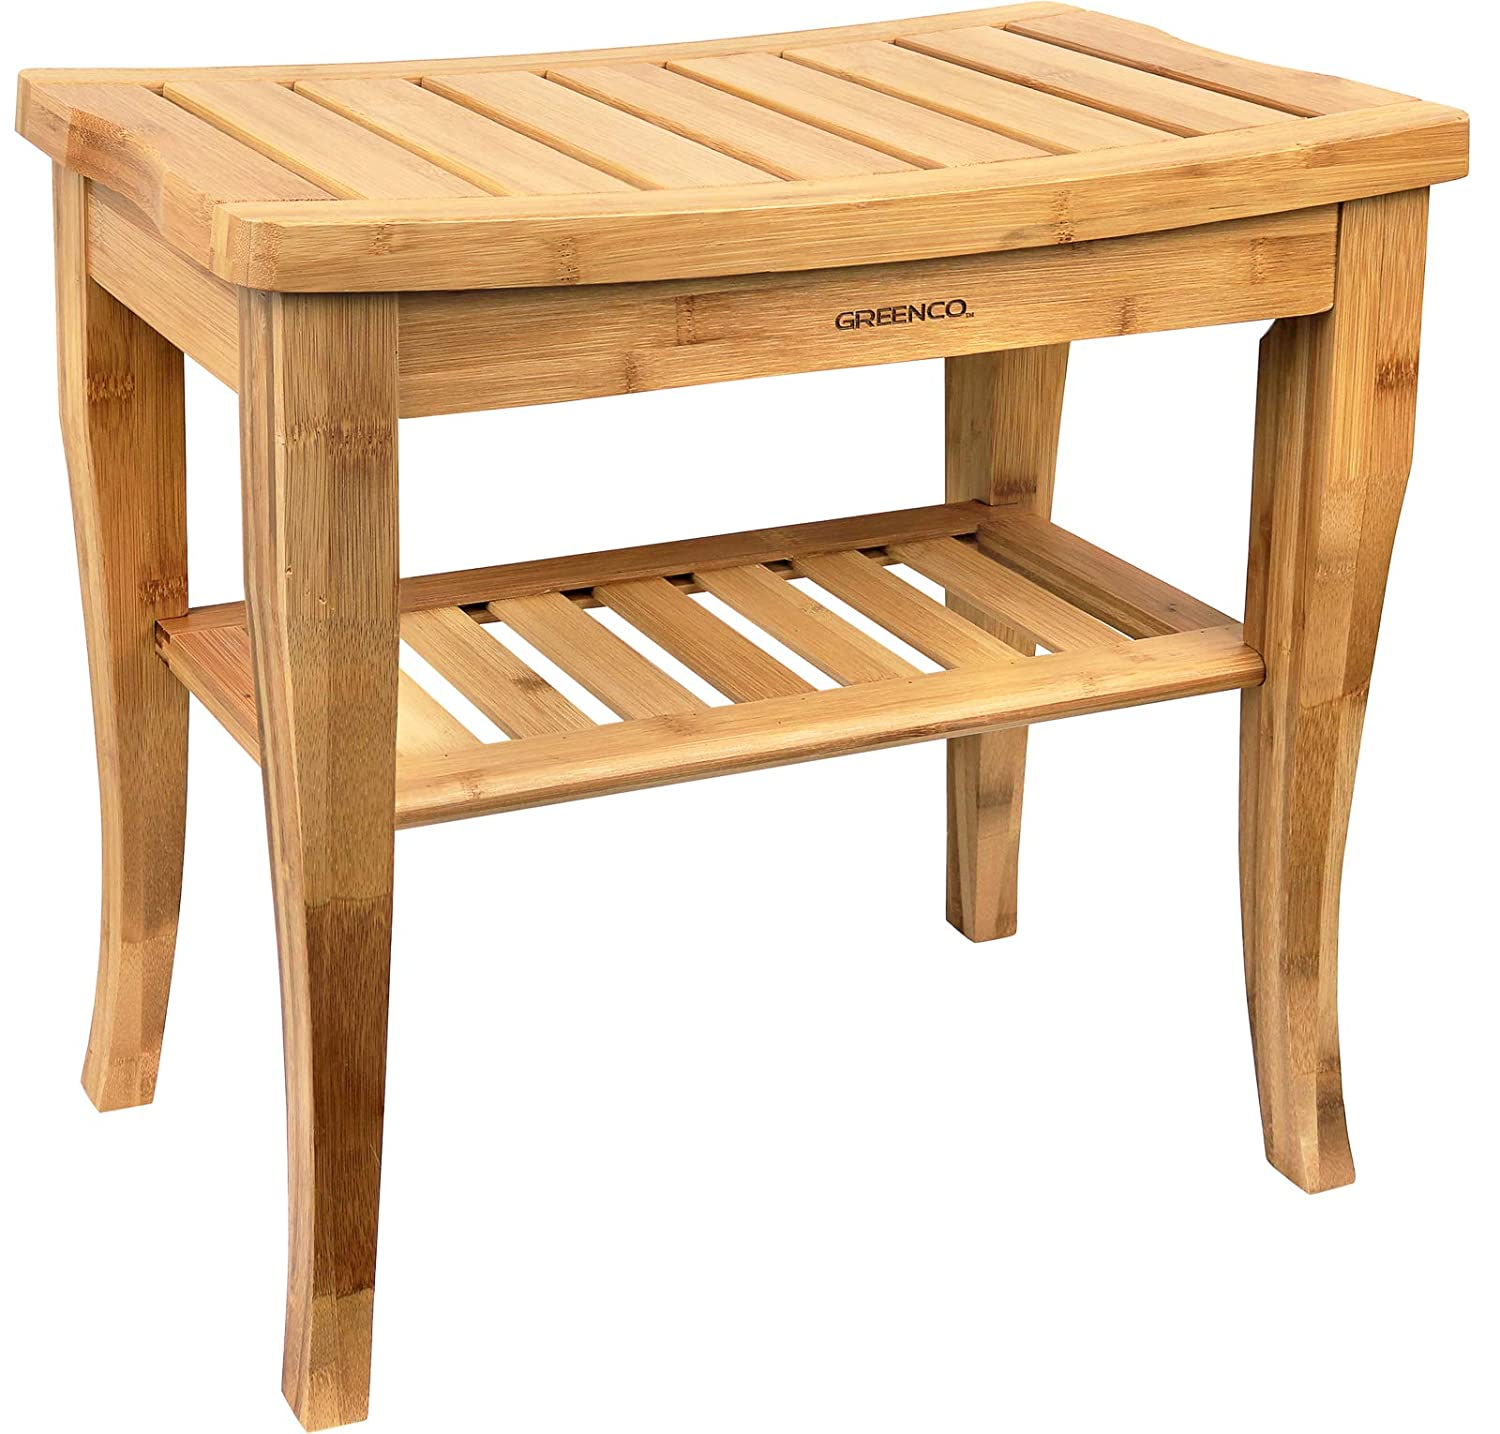 Greenco Waterproof Bamboo Shower Bench with Shelf, Wooden Spa Bath Stool, Indoor and Outdoor